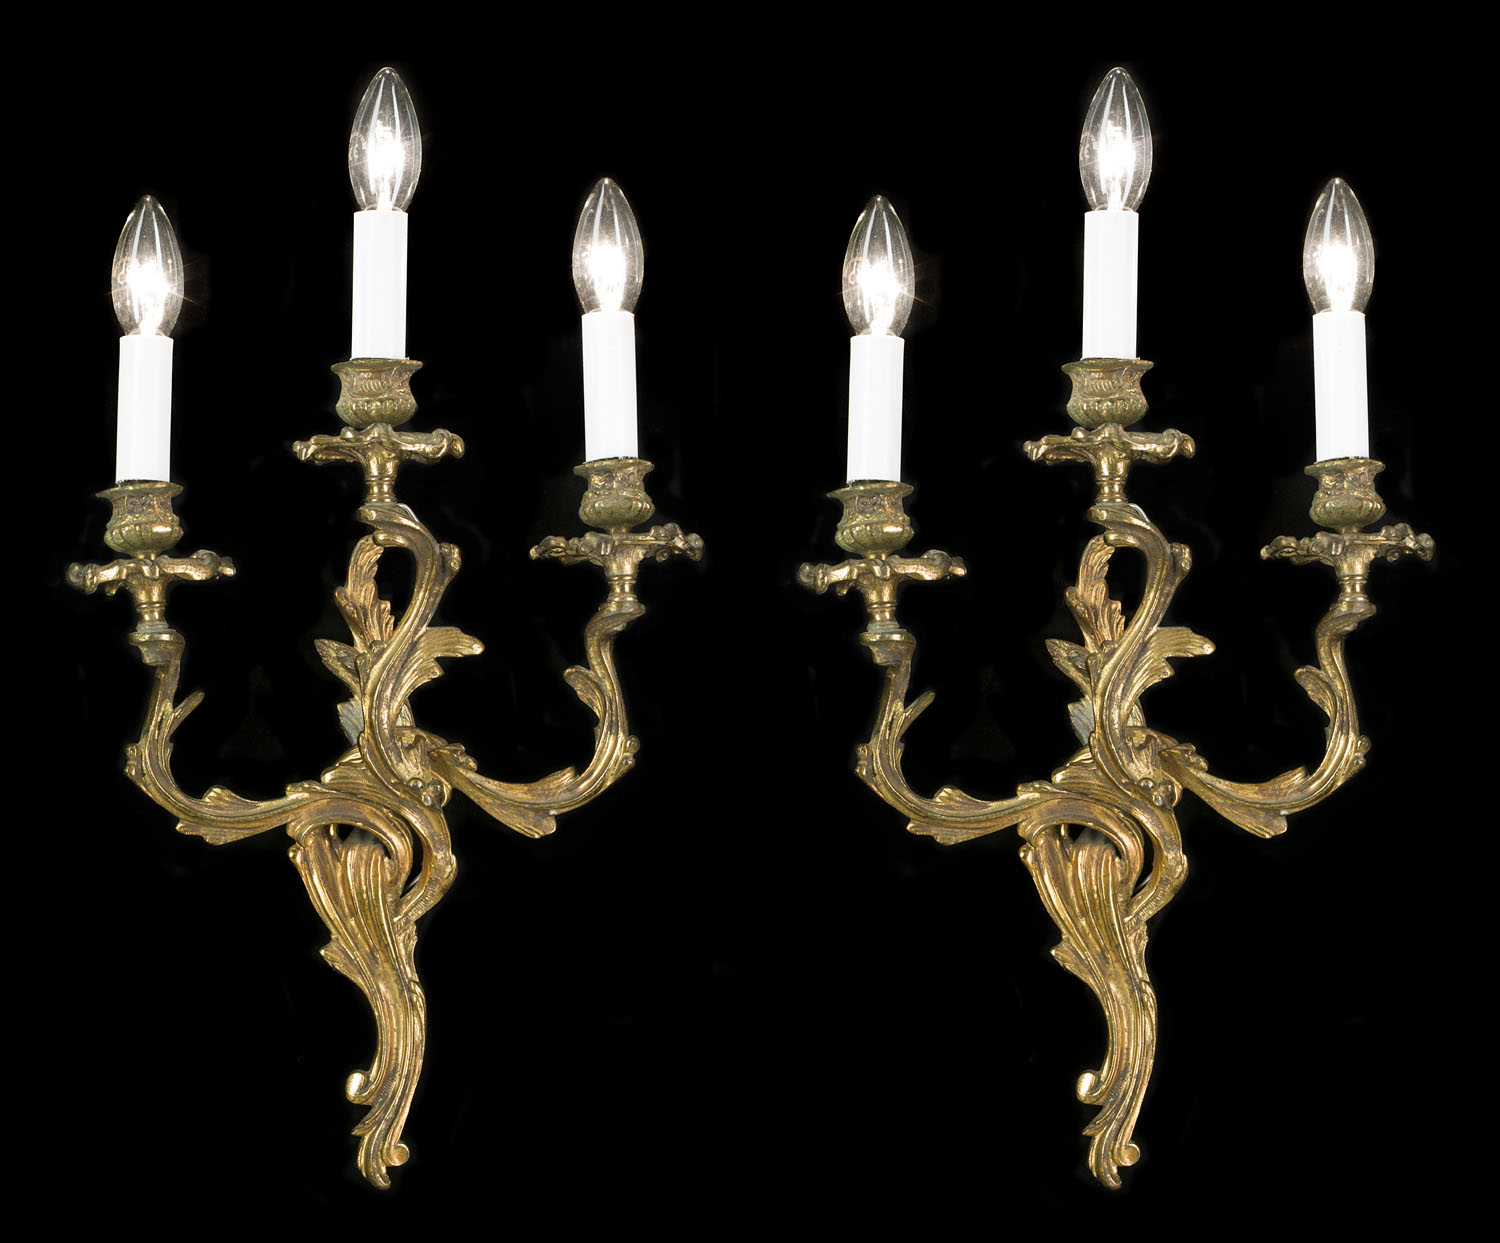 A 20th century pair of Rococo style three branch ormolu wall lights